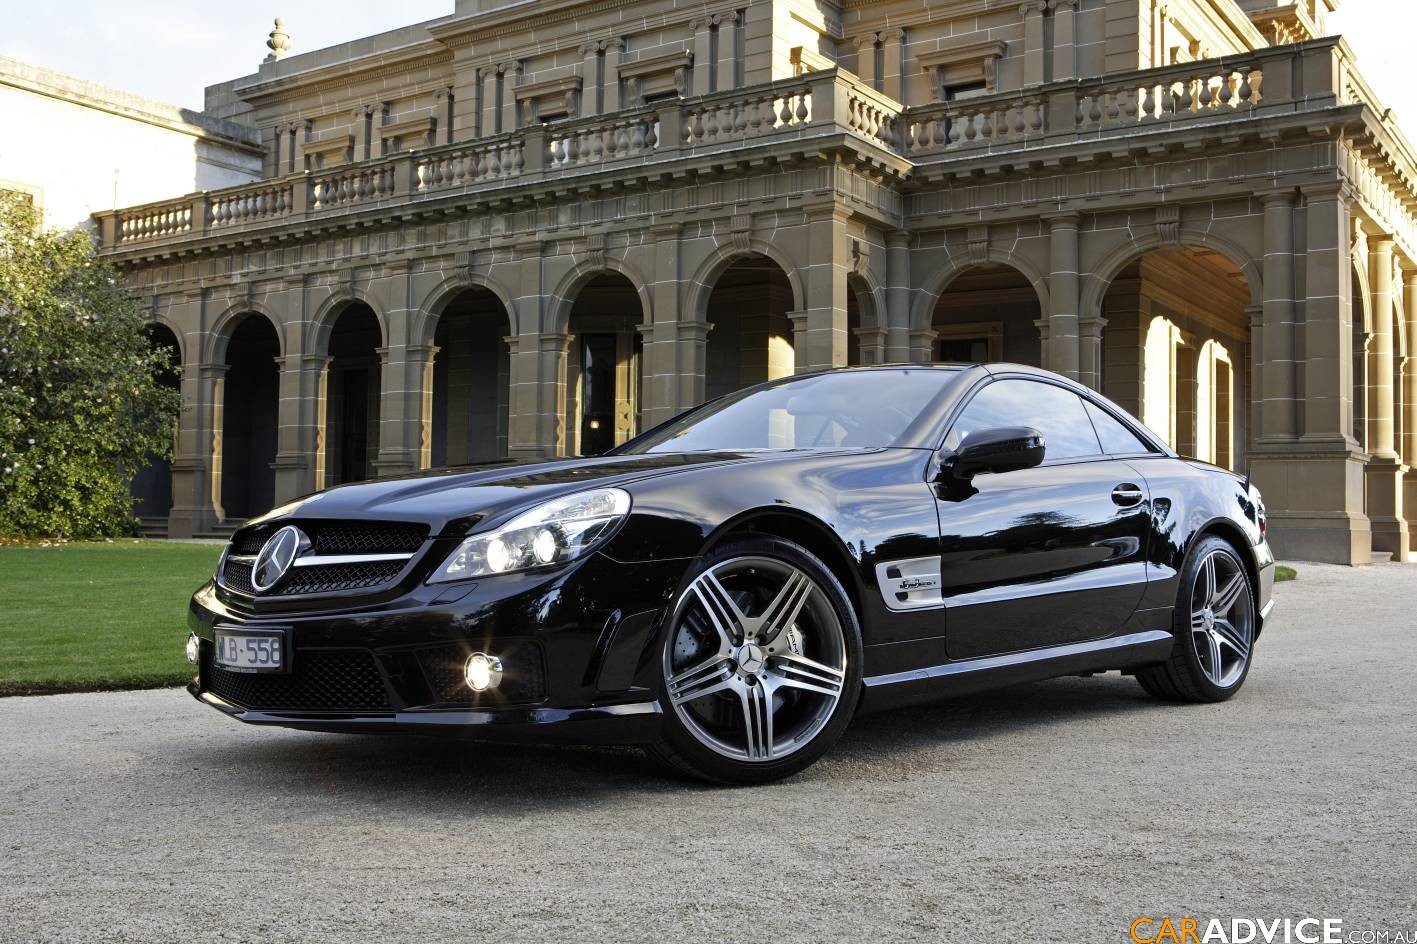 2008 Mercedes-Benz SL-Class Roadster. Since the introduction of the iconic